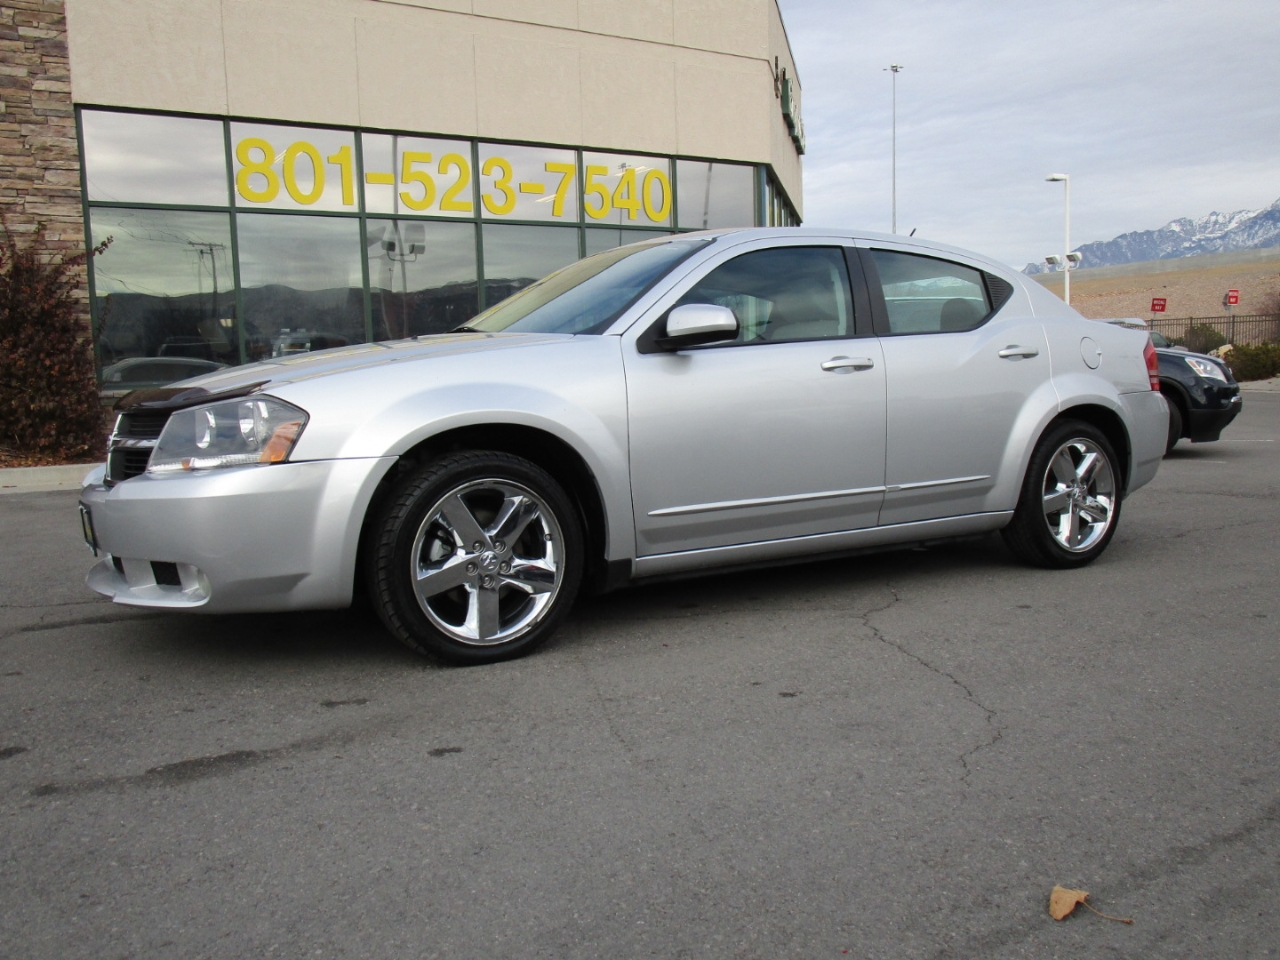 2008 Dodge Avenger 4dr Sdn R/T FWD *Ltd Avail*